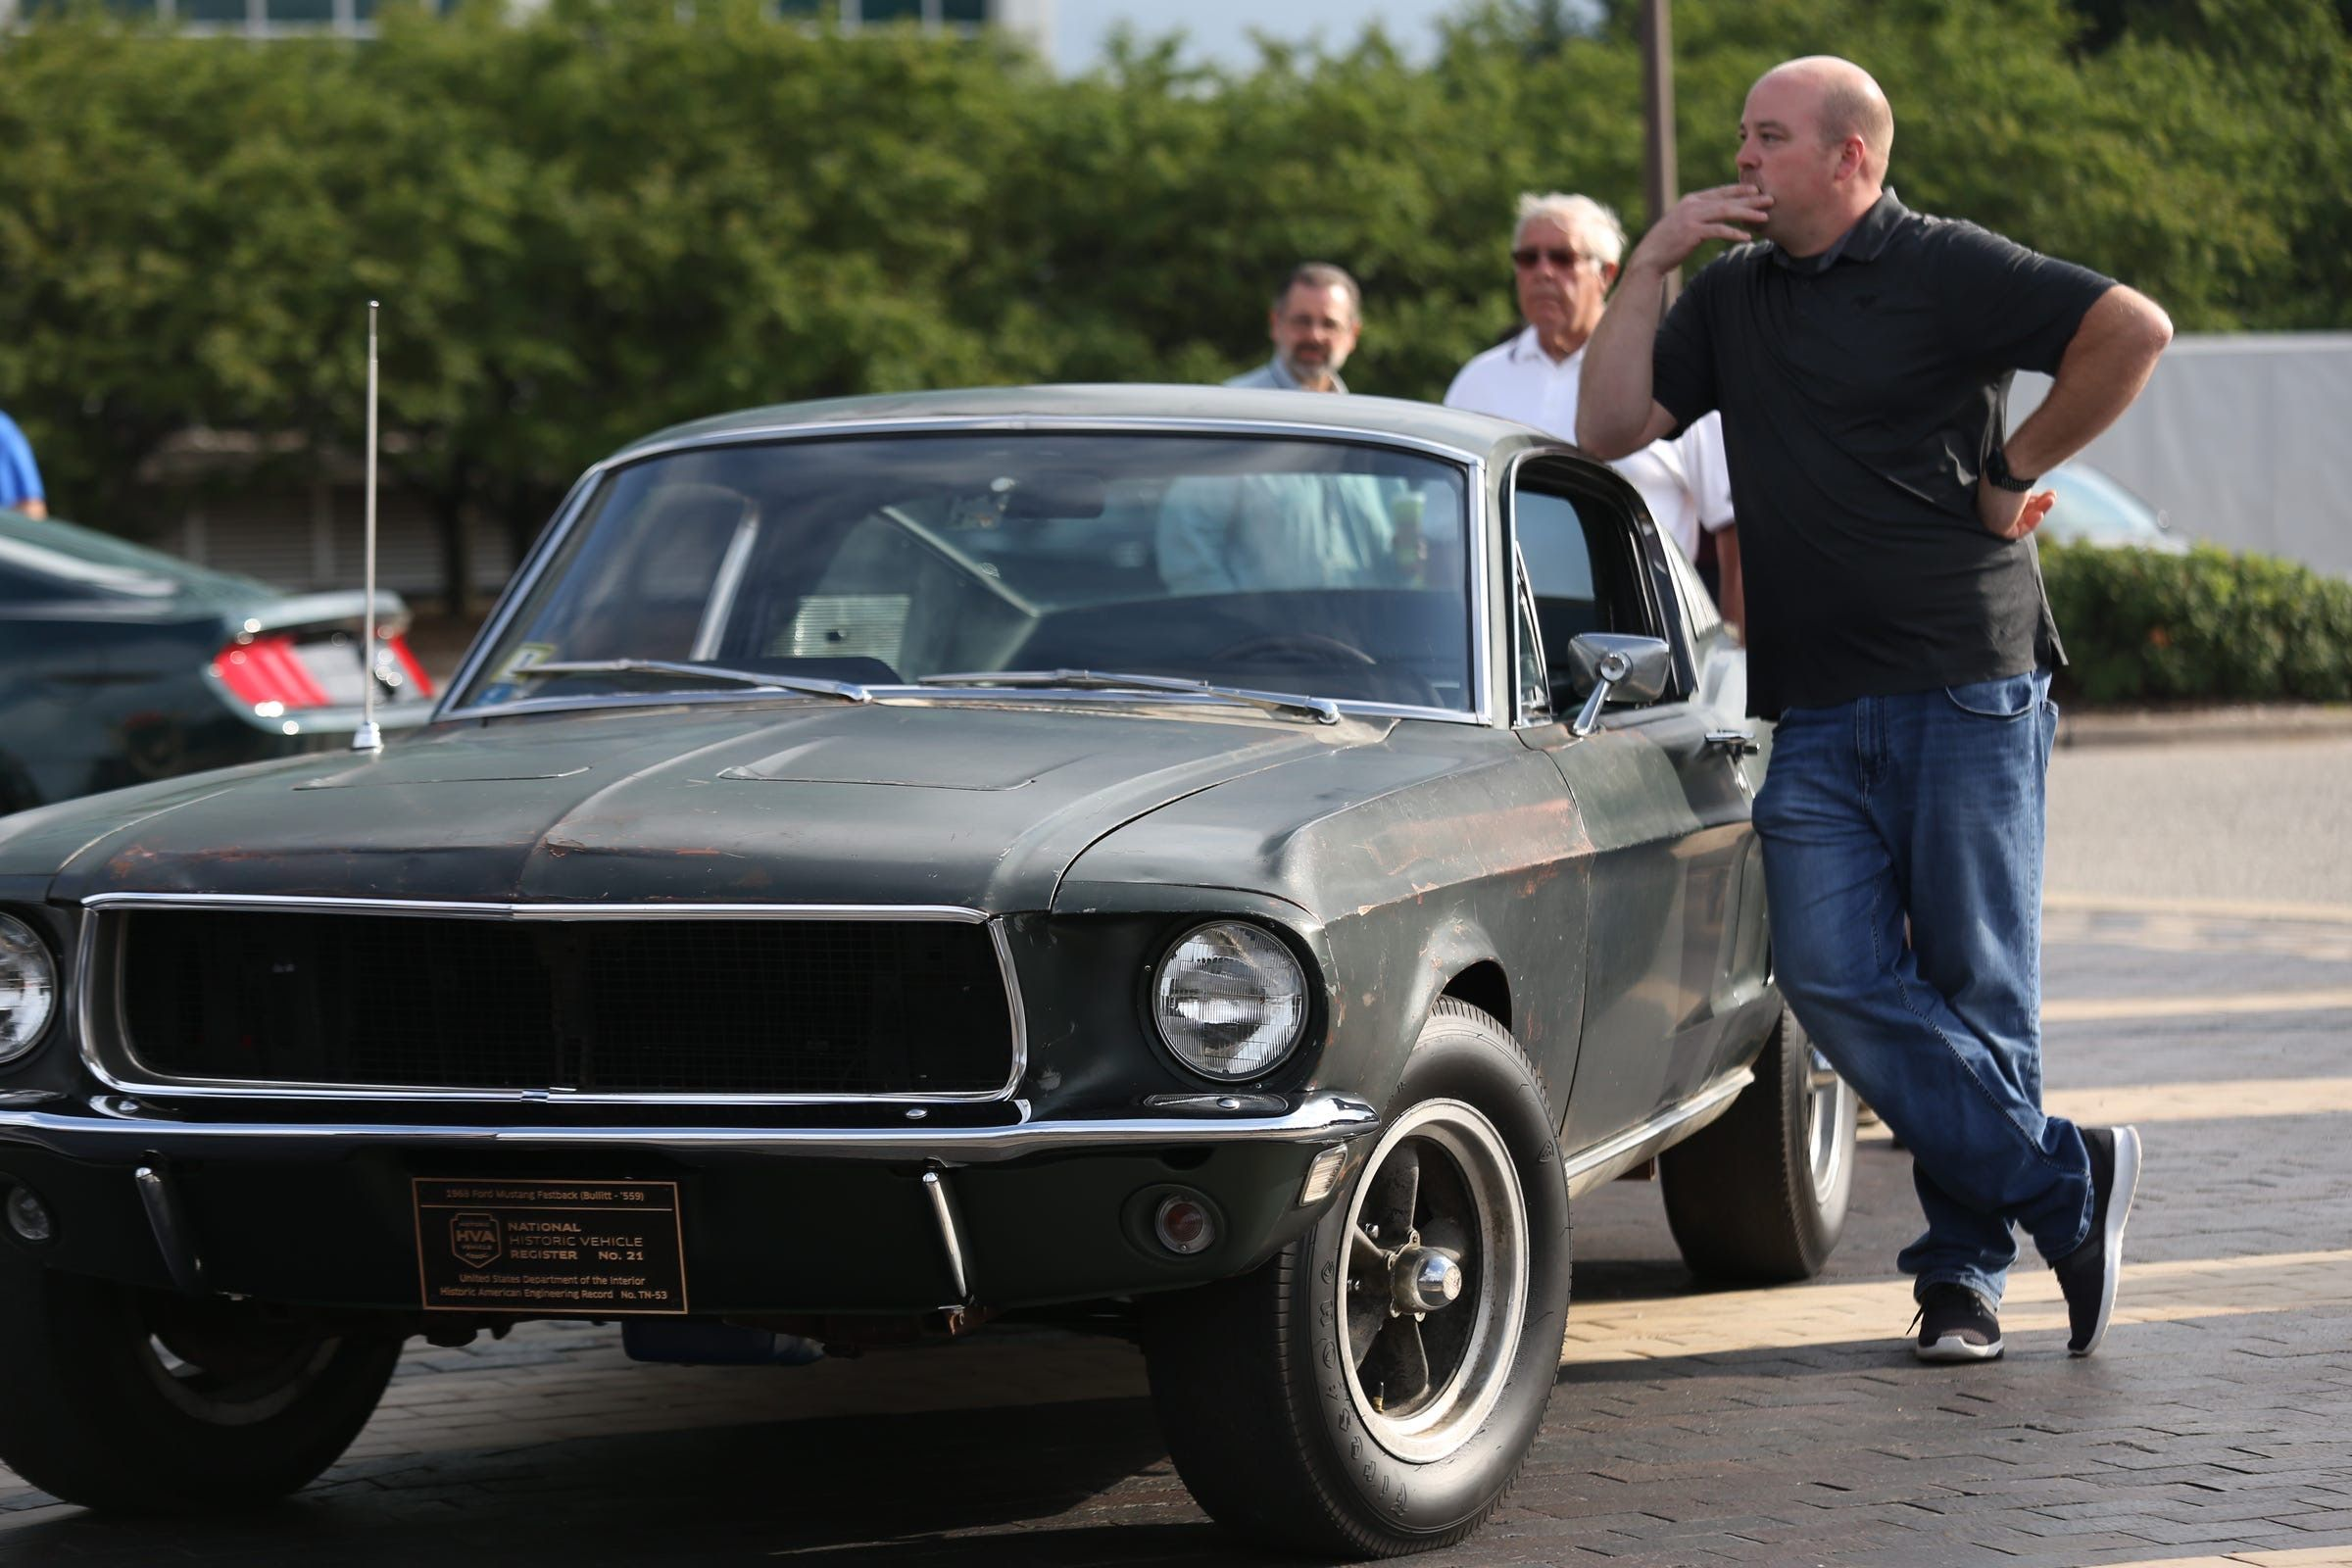 Pin By Kingofkings413 On Ford Mustang In 2020 Steve Mcqueen